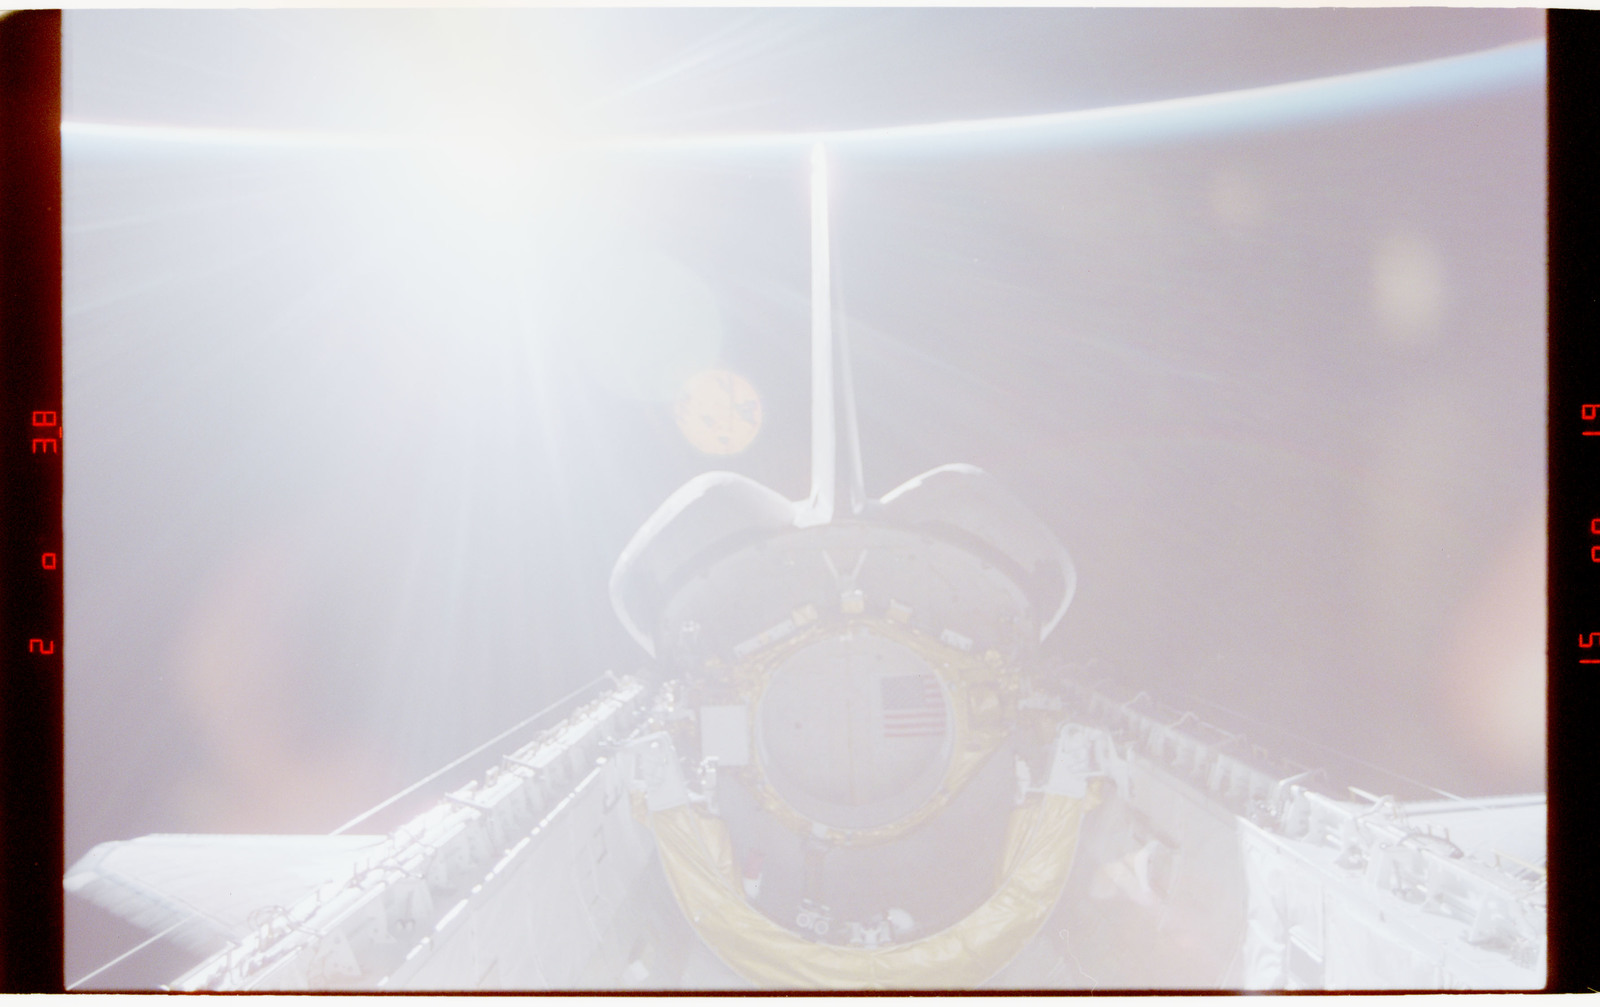 STS070-347-028 - STS-070 - View of empty payload bay after deploy of TDRS satellite